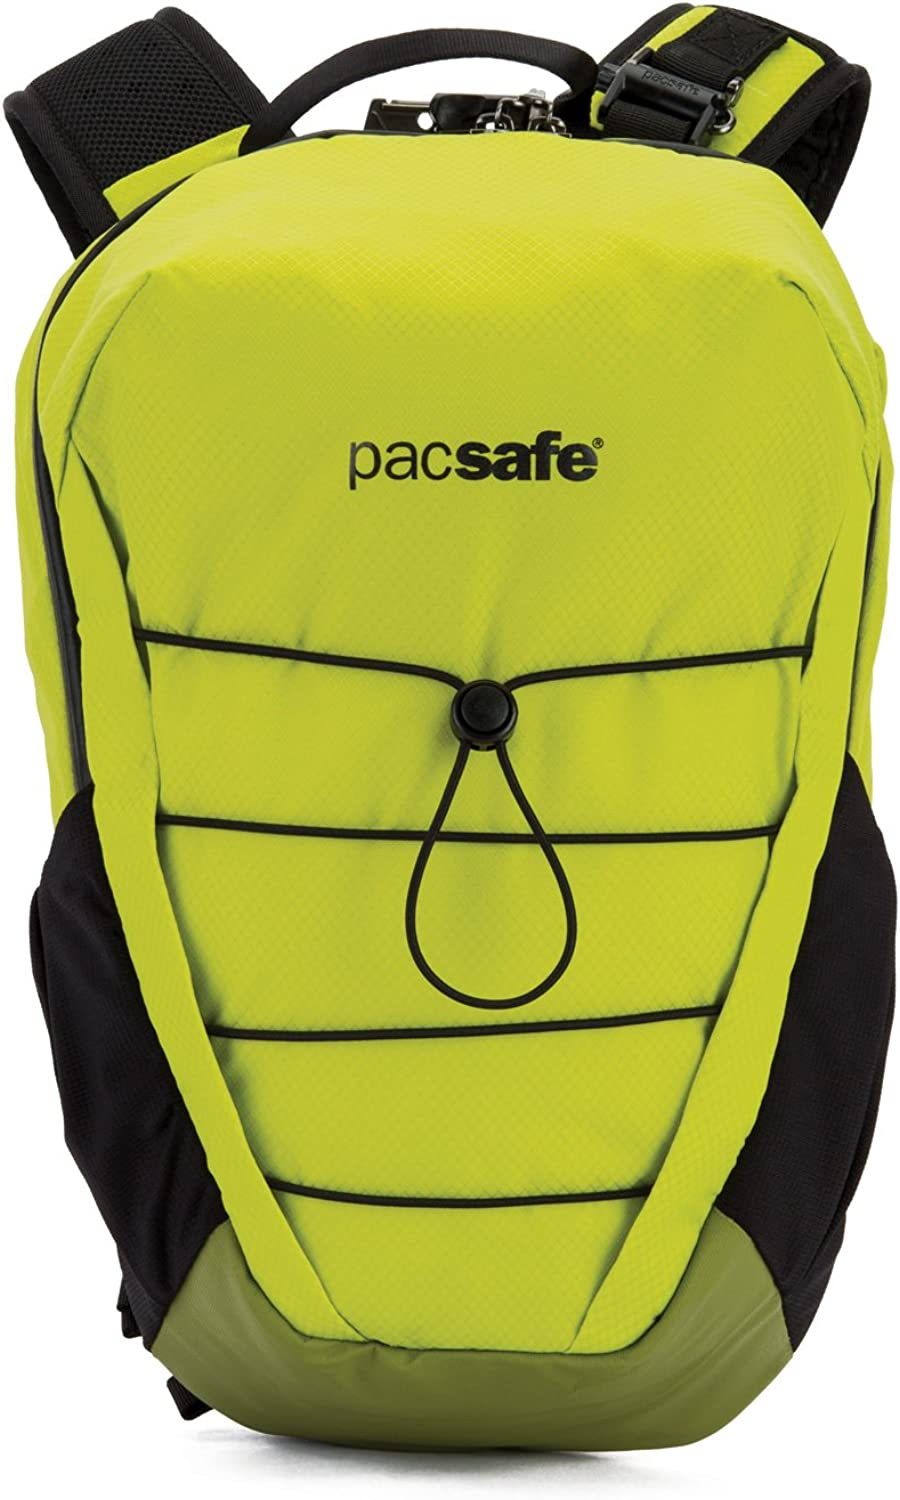 PacSafe Venturesafe X12 Anti-Theft Outdoor Daypack, Charcoal